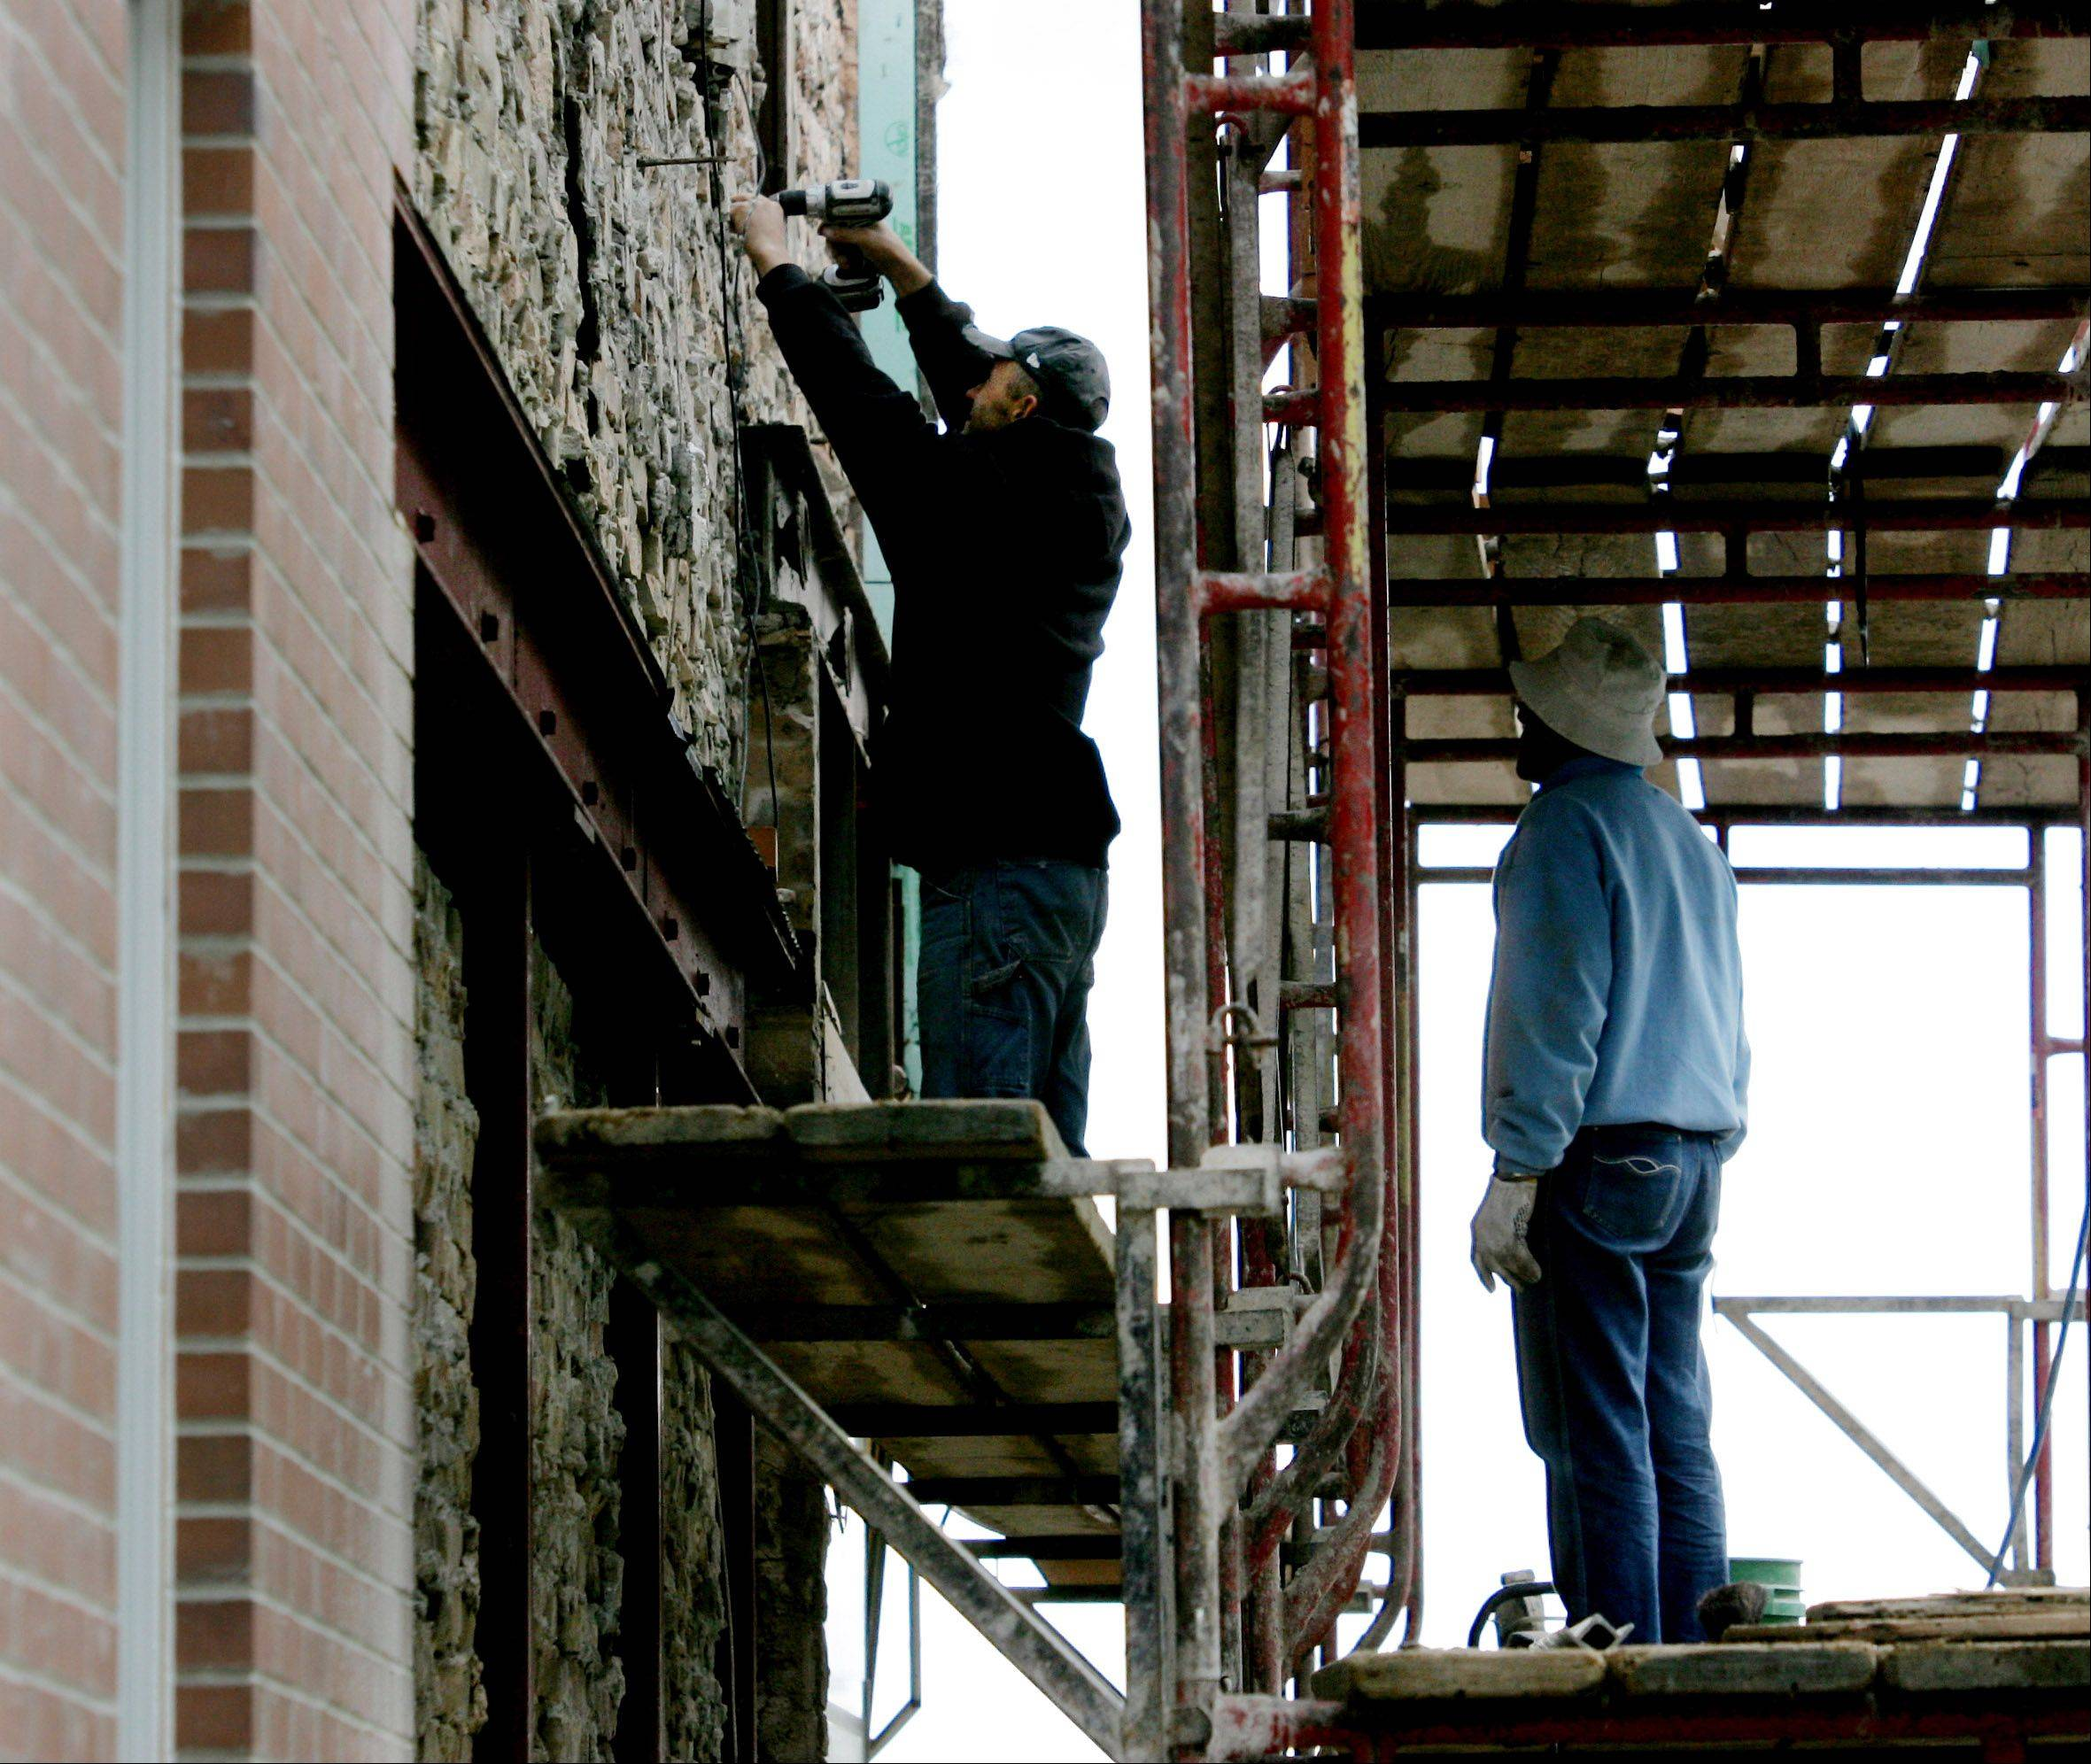 Peter Rafacz, left, and Adam Rafacz, both of R.P. Masonry, work on the brick facade Monday on the exterior of the Picnic Basket restaurant in downtown Libertyville.